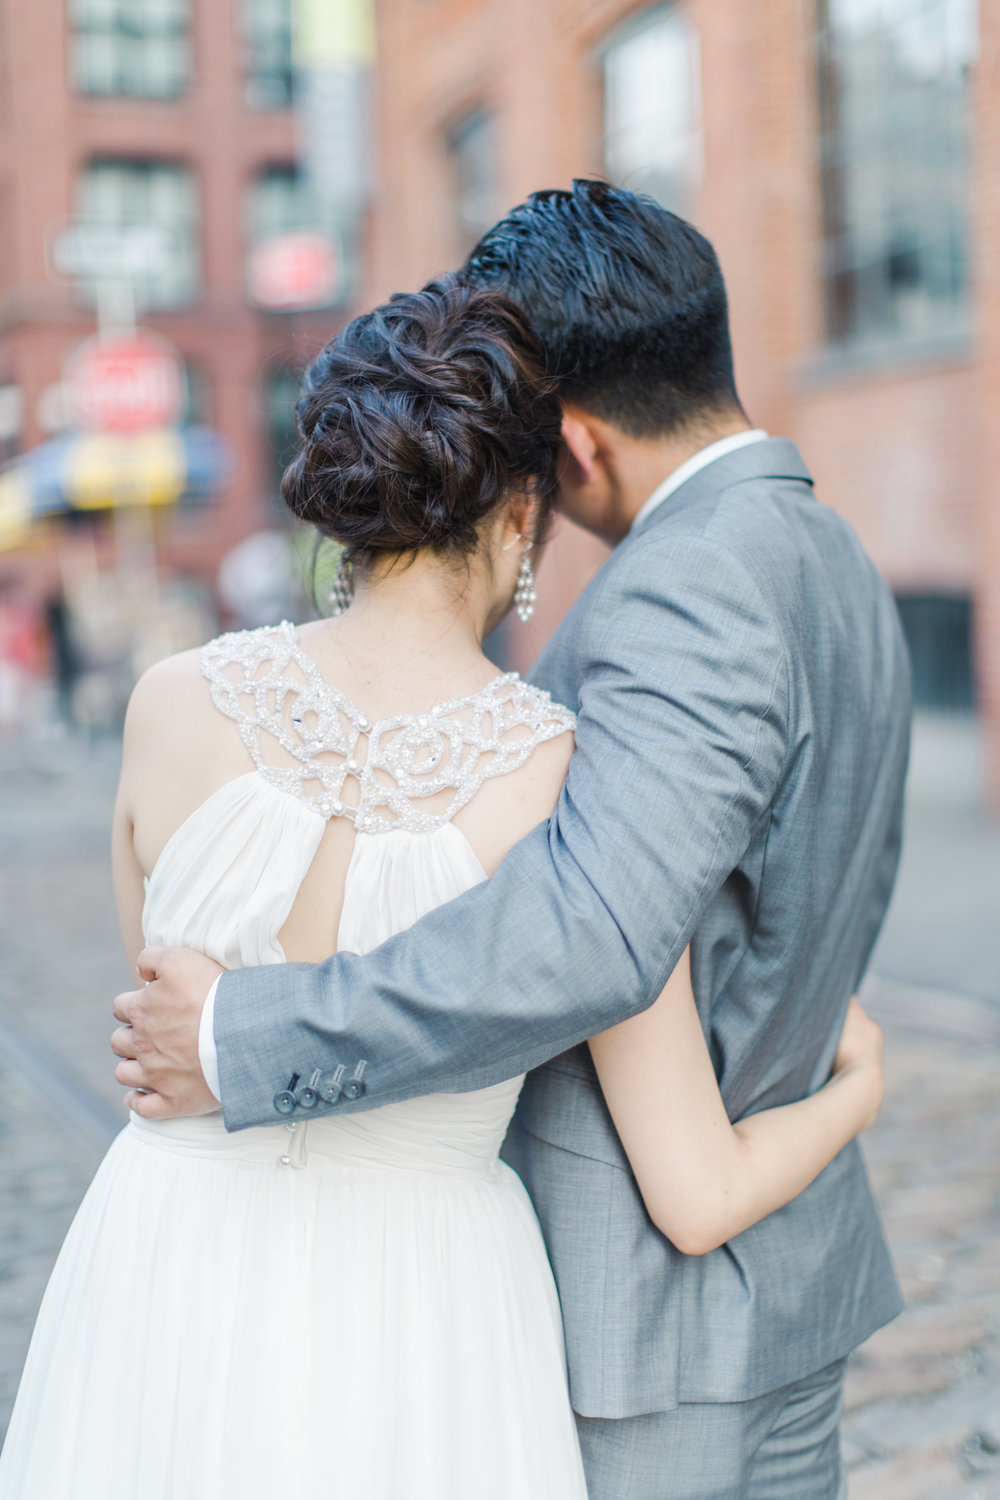 Bridal hairstylist New York City